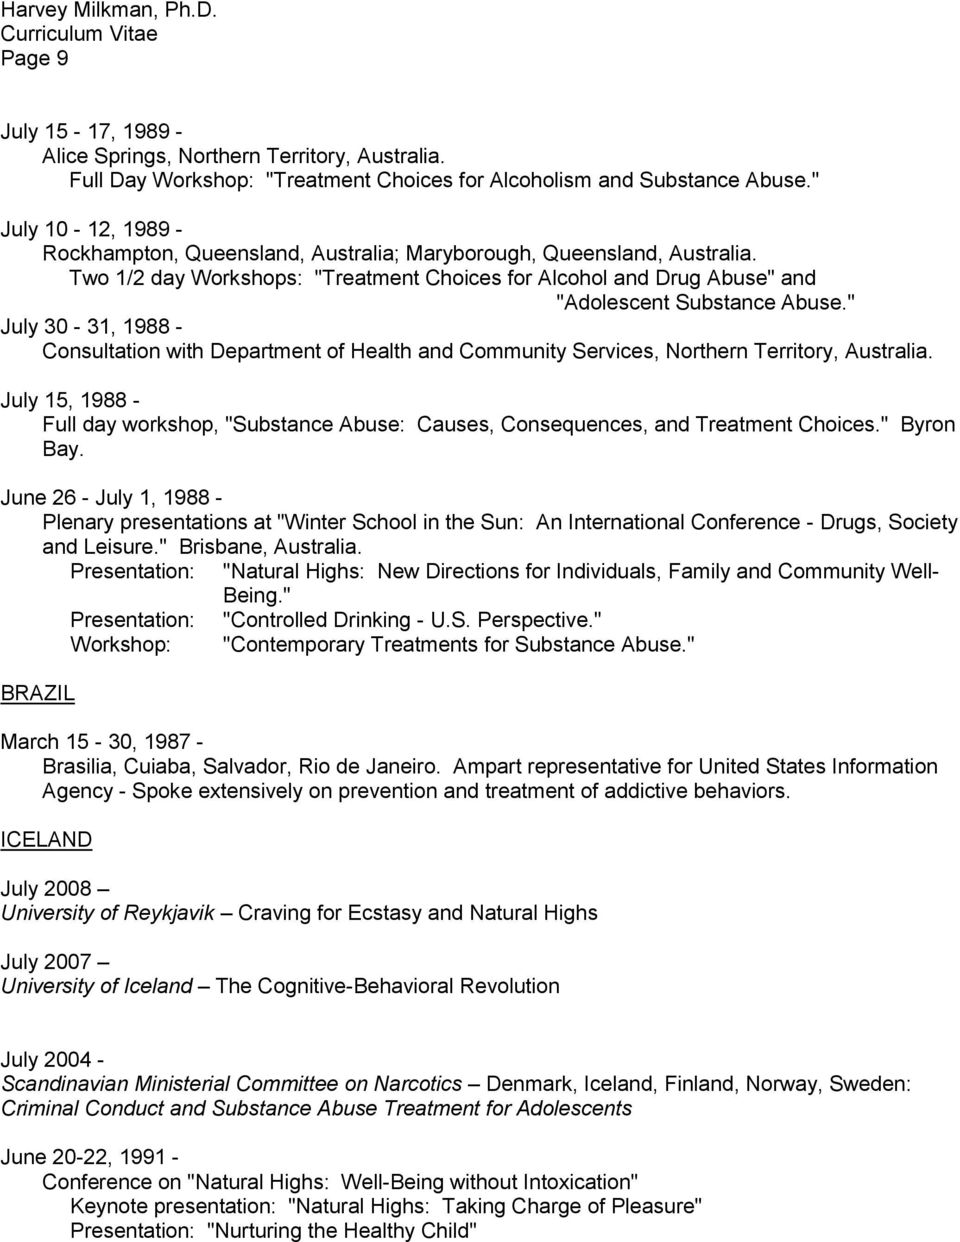 """ July 30-31, 1988 - Consultation with Department of Health and Community Services, Northern Territory, Australia."